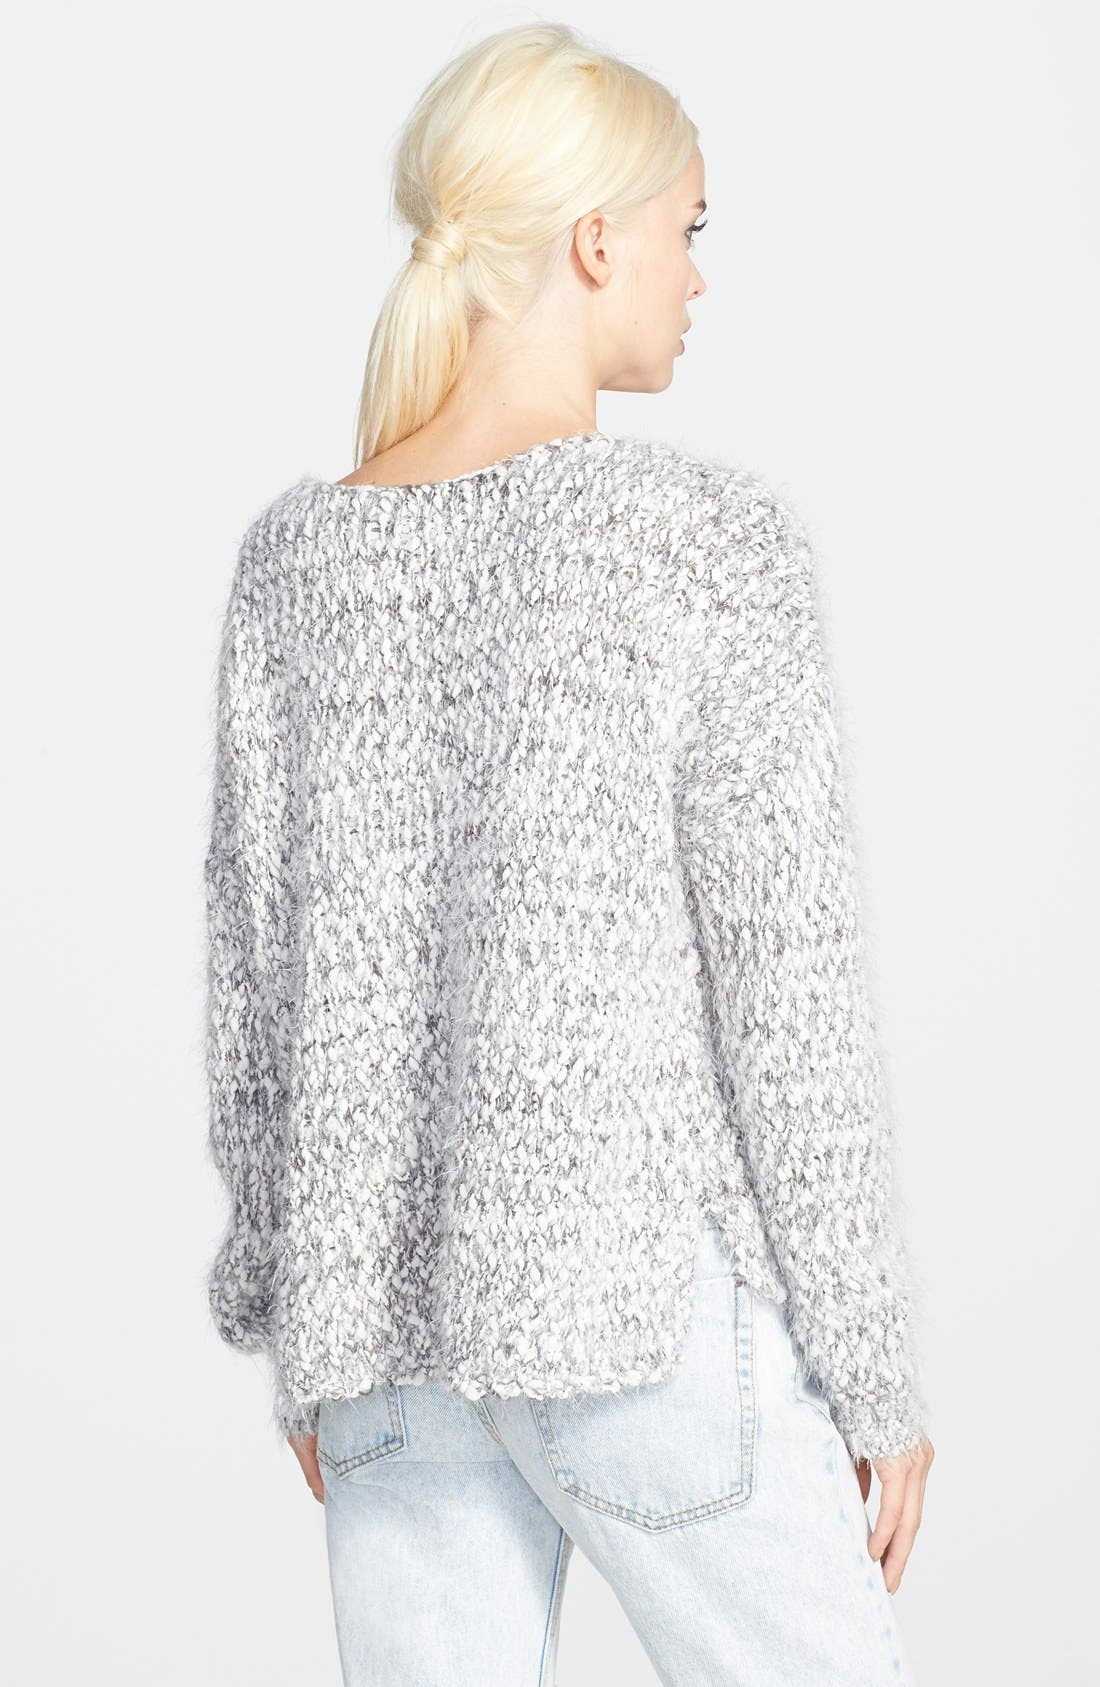 ASTR Marled Fringe Sweater,                             Alternate thumbnail 2, color,                             Grey/ Cream